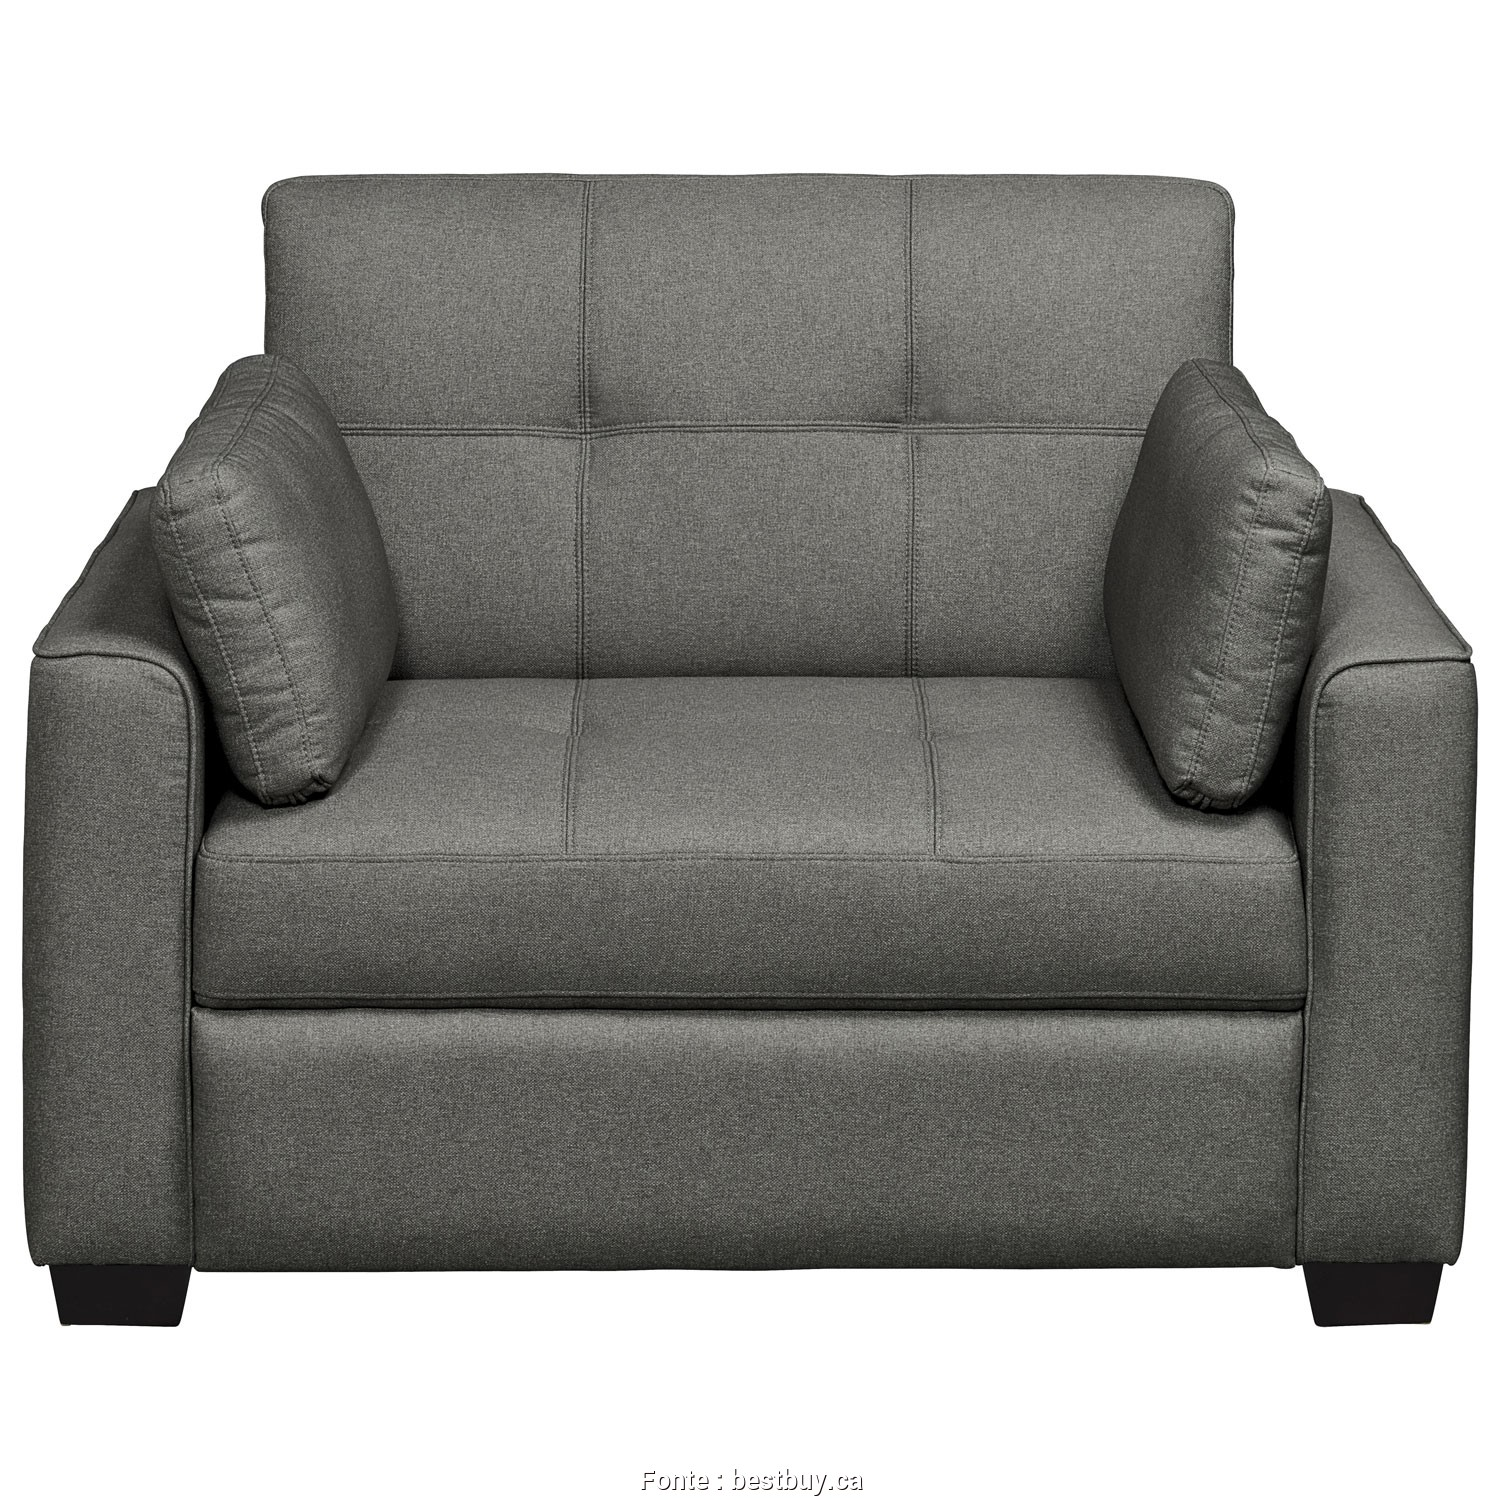 Futon Ikea A Vendre, Modesto Olsen Transitional Fabric Sofa,, Single, Grey